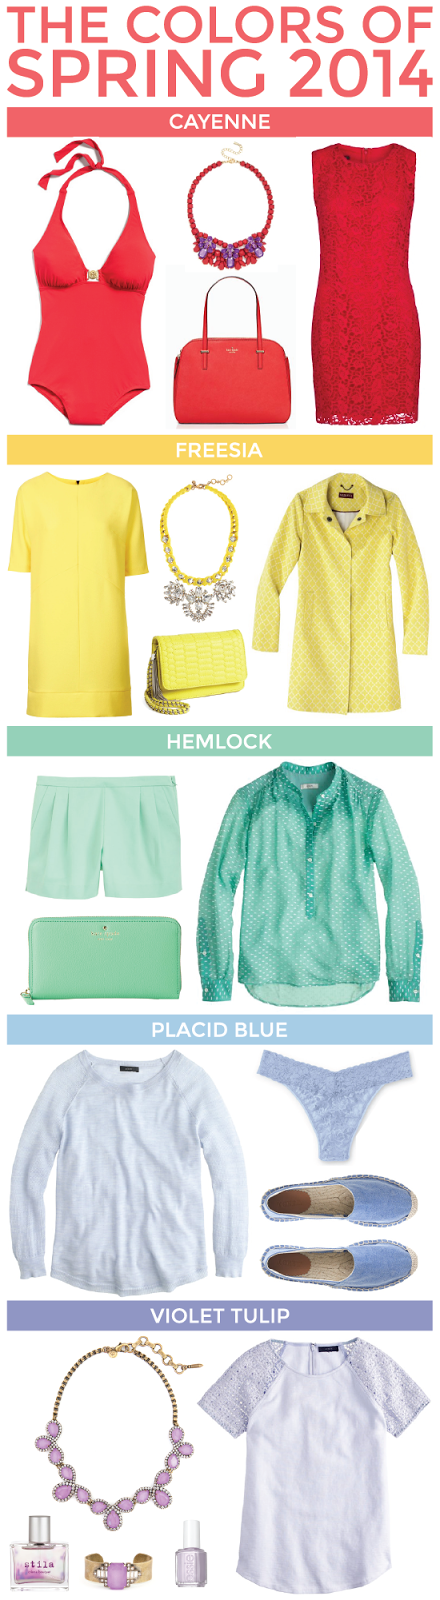 the colors of spring 2014.